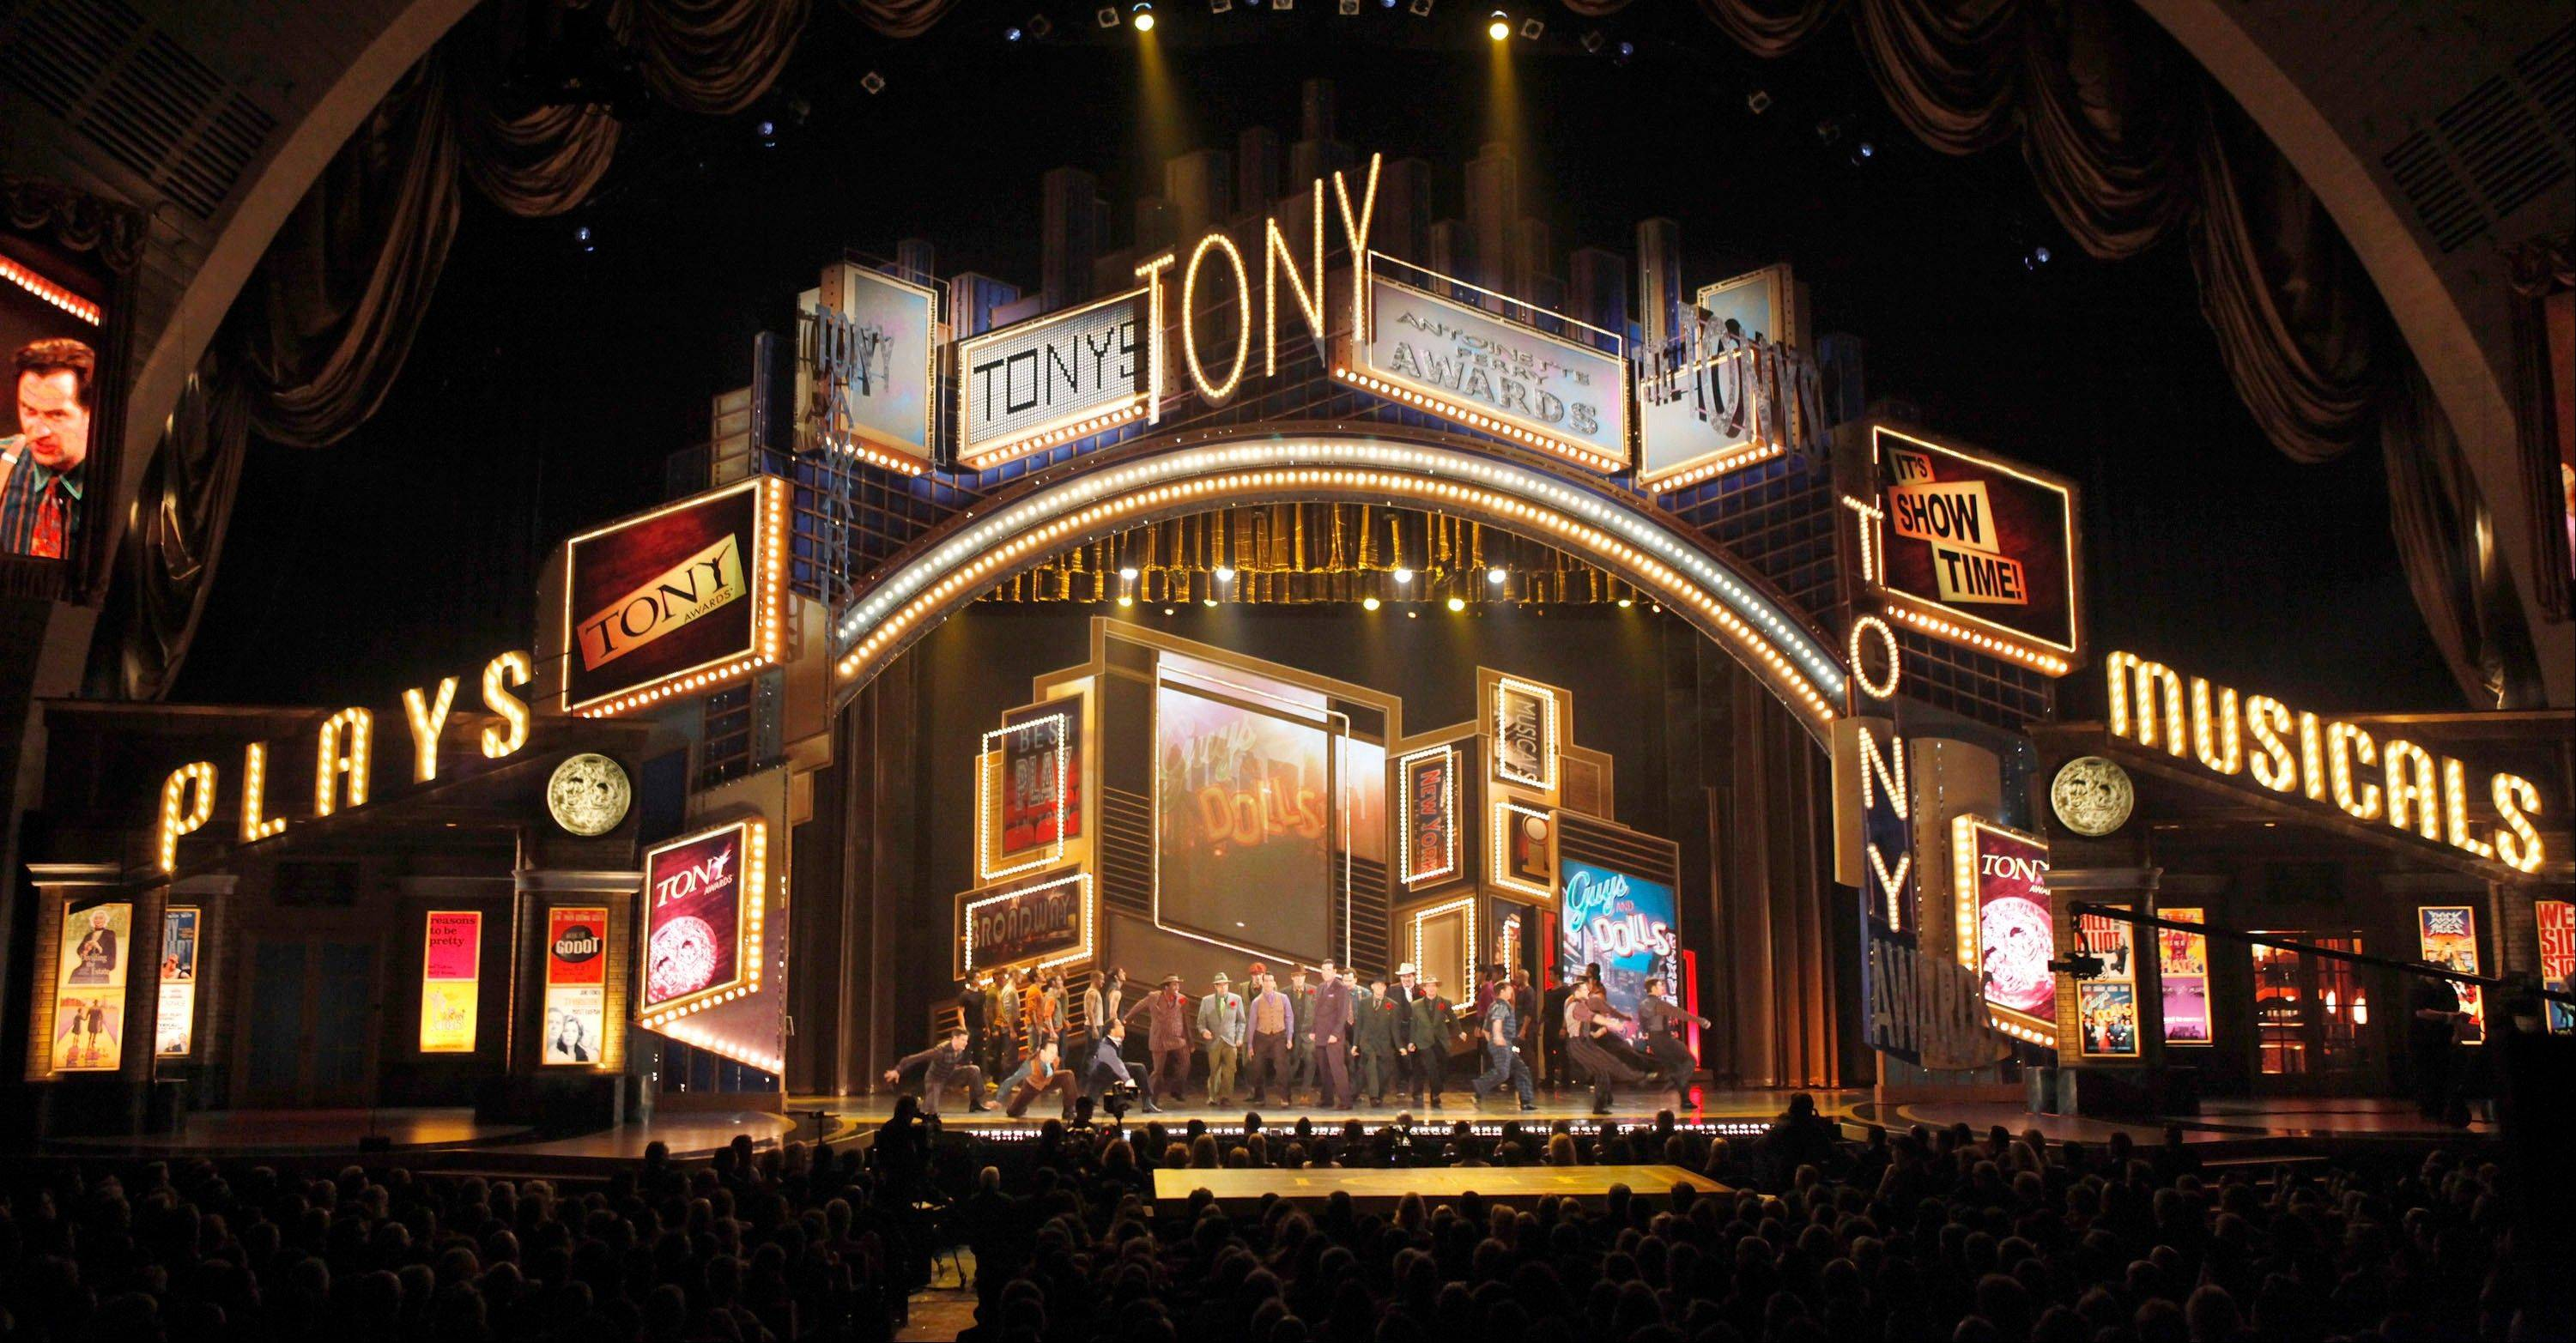 The Broadway League and the American Theatre Wing, joint producers of the Tony Awards show, said that the glittery event will be broadcast live from Radio City Music Hall this year.